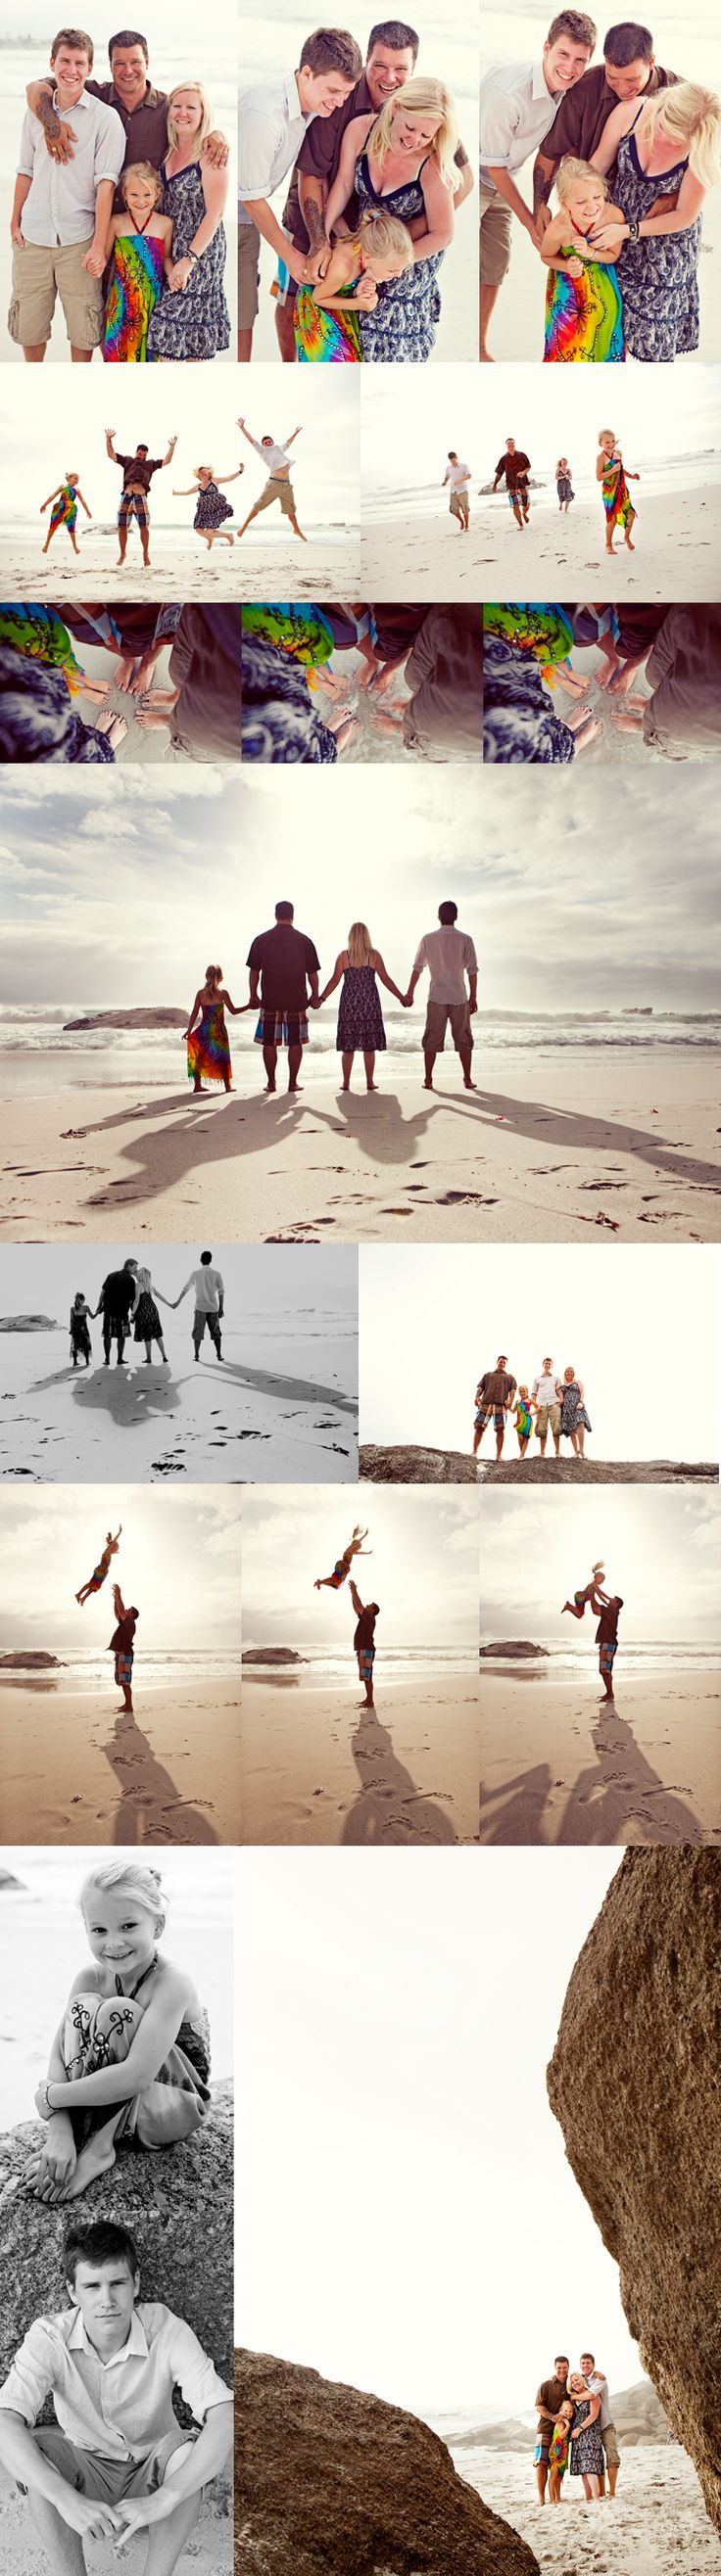 Beach Inspired - Good Ideas for Poses  (Kelsy Nielson Photographer)